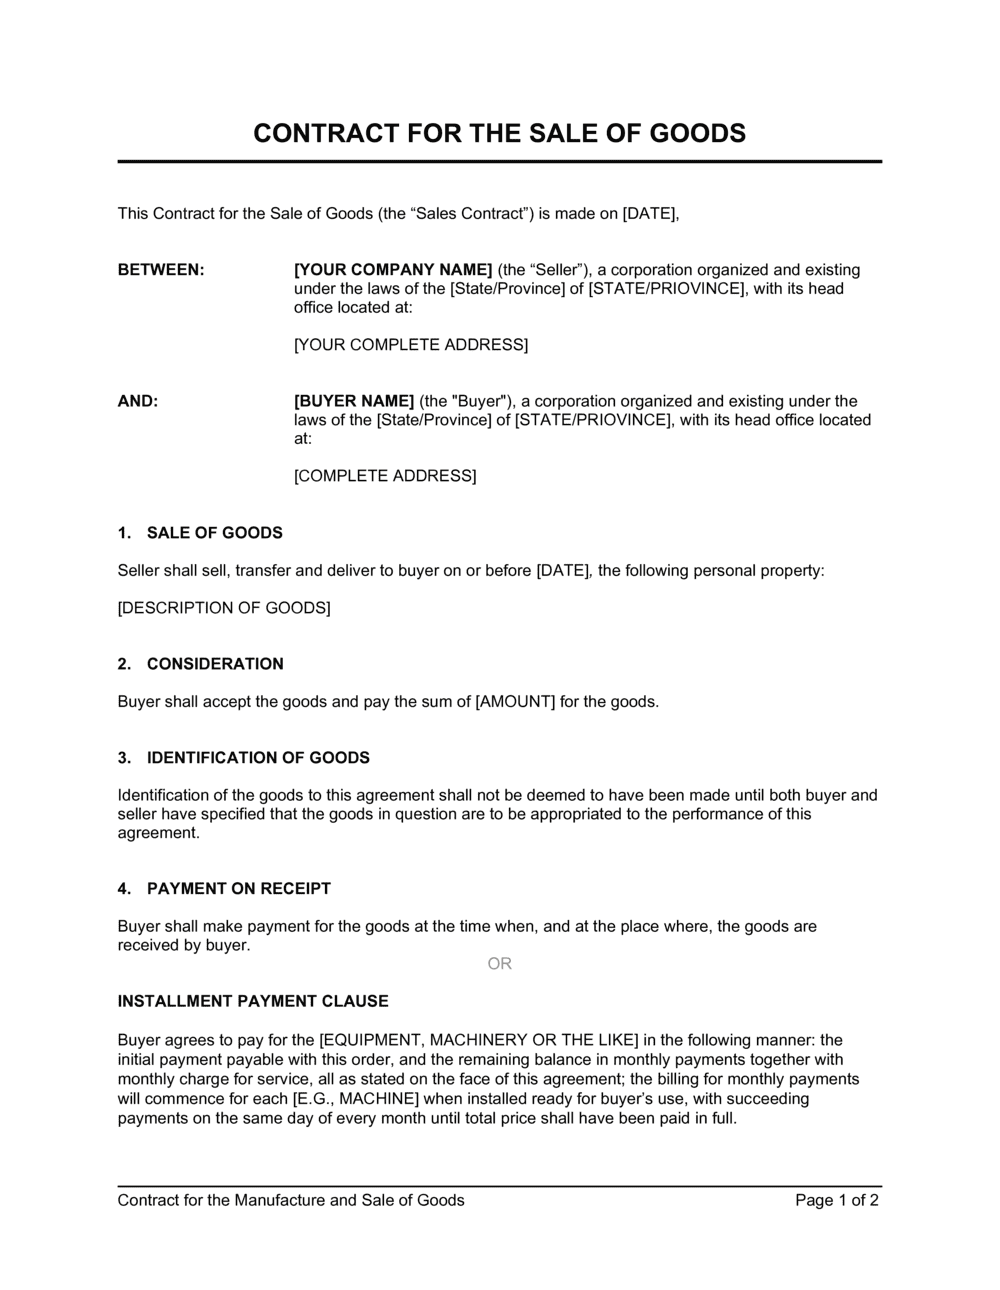 Business-in-a-Box's Contract for the Sale of Goods Template